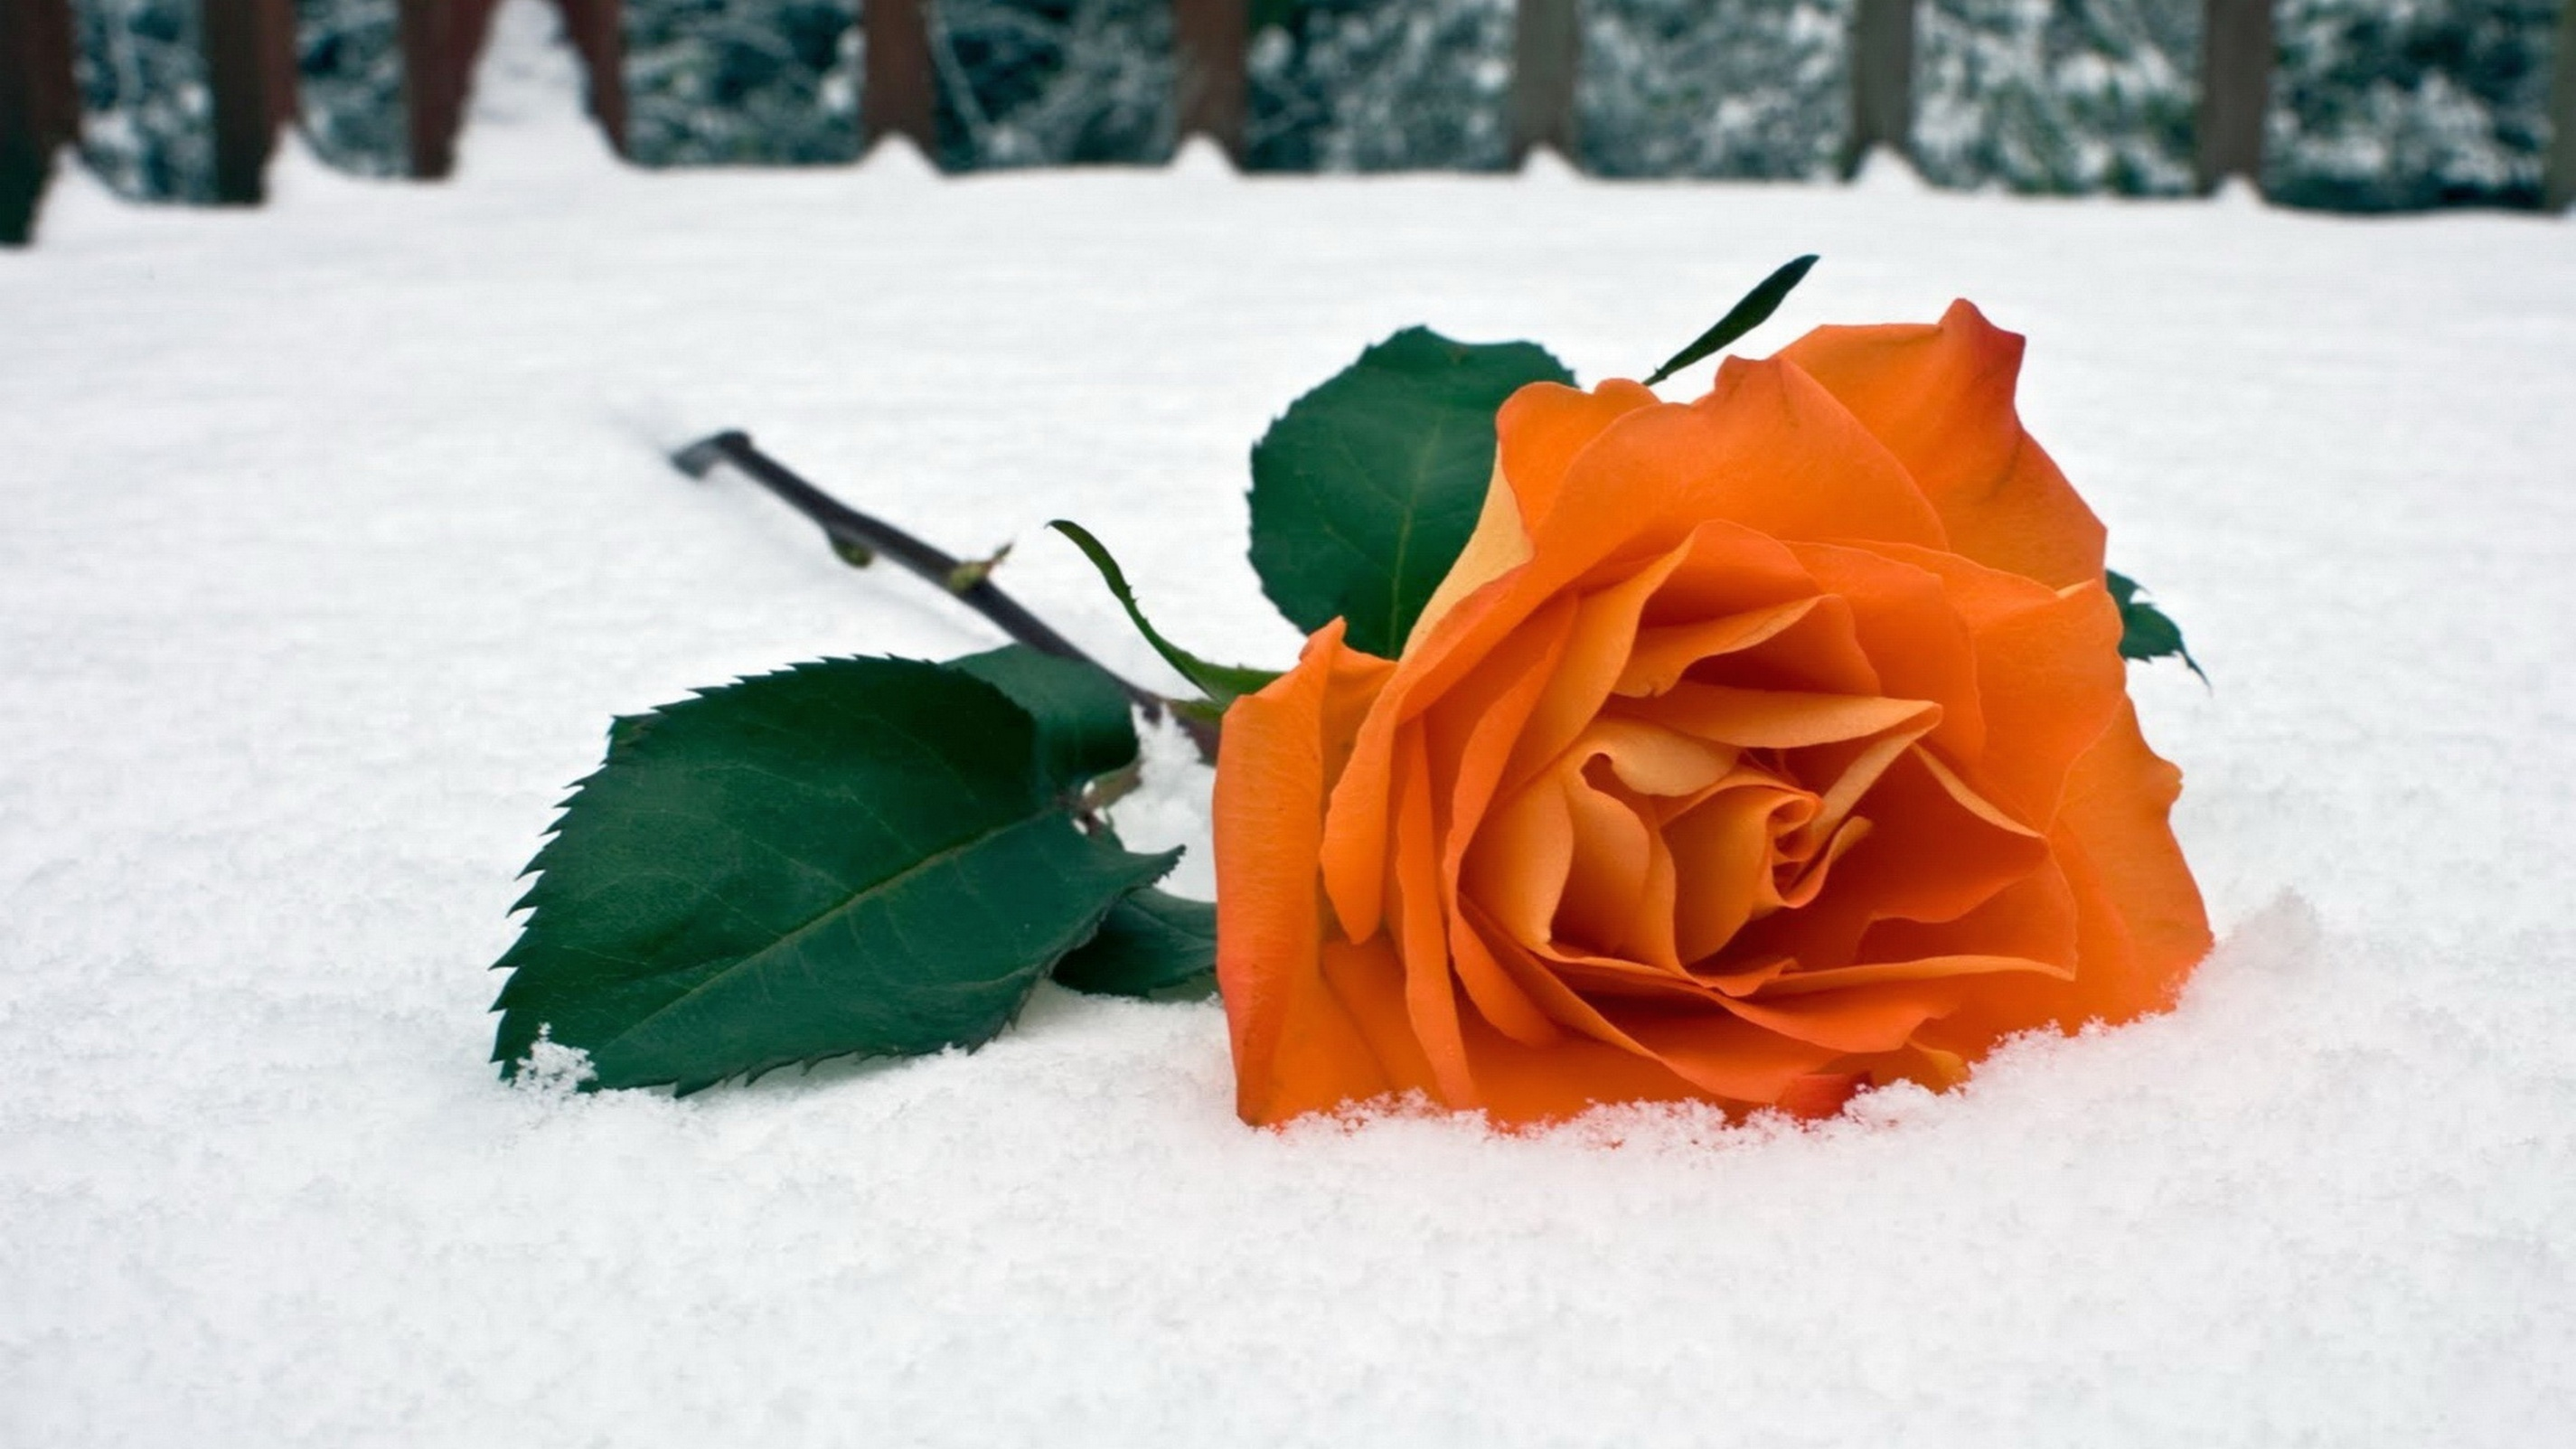 Orange Rose In The Snow Hd Wallpaper Background Image